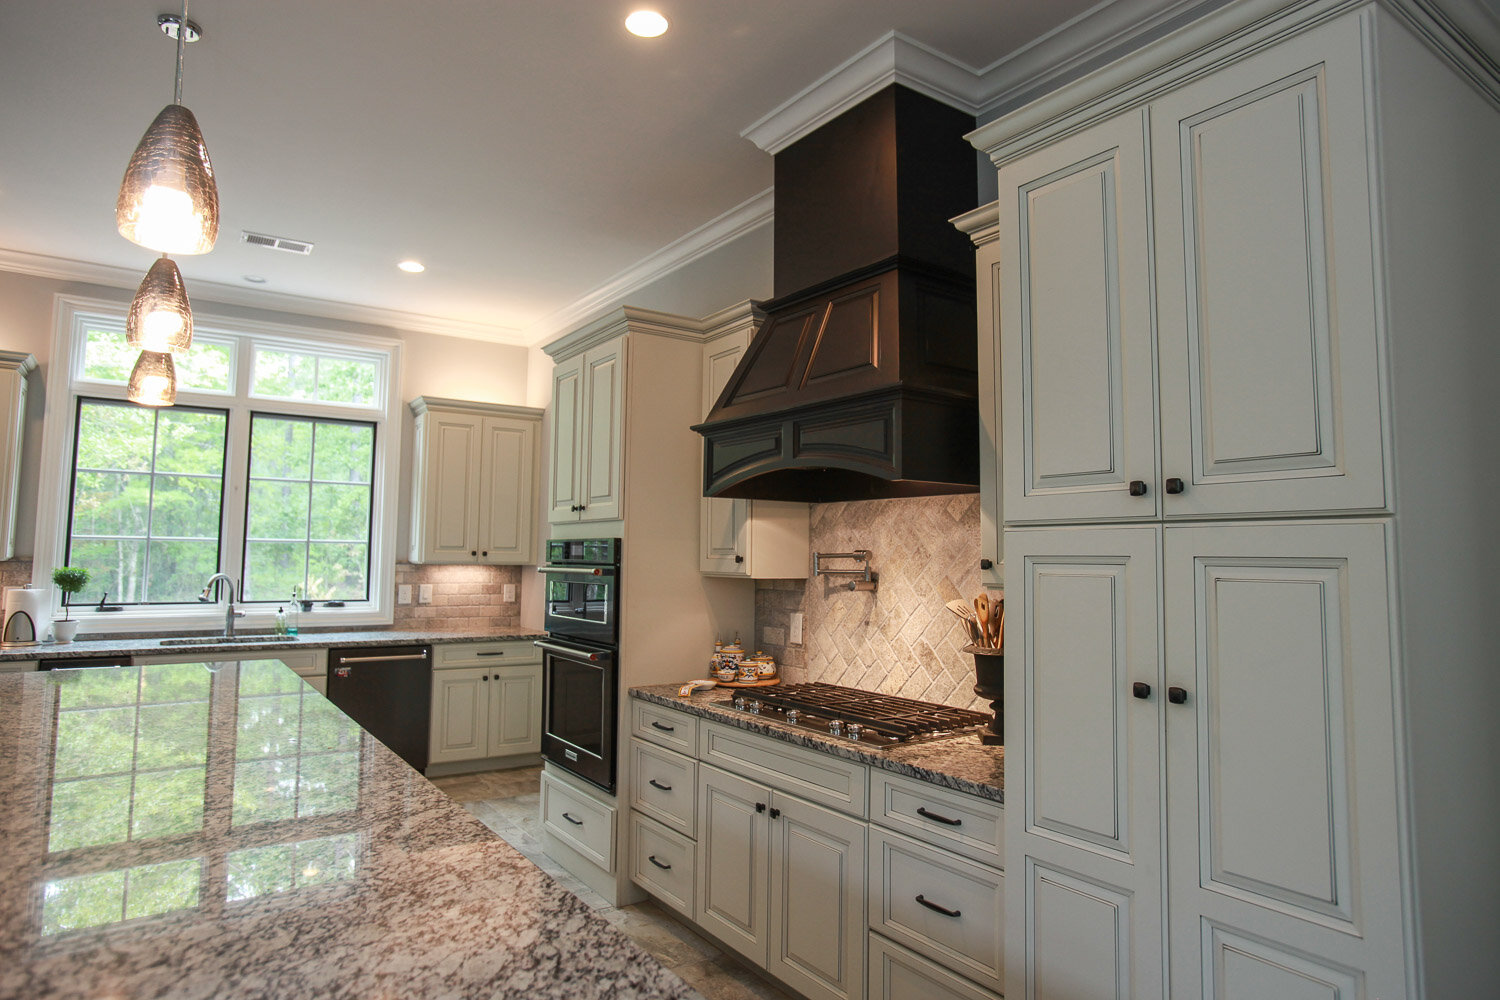 Icy mint maple kitchen design project in Shelby, TN